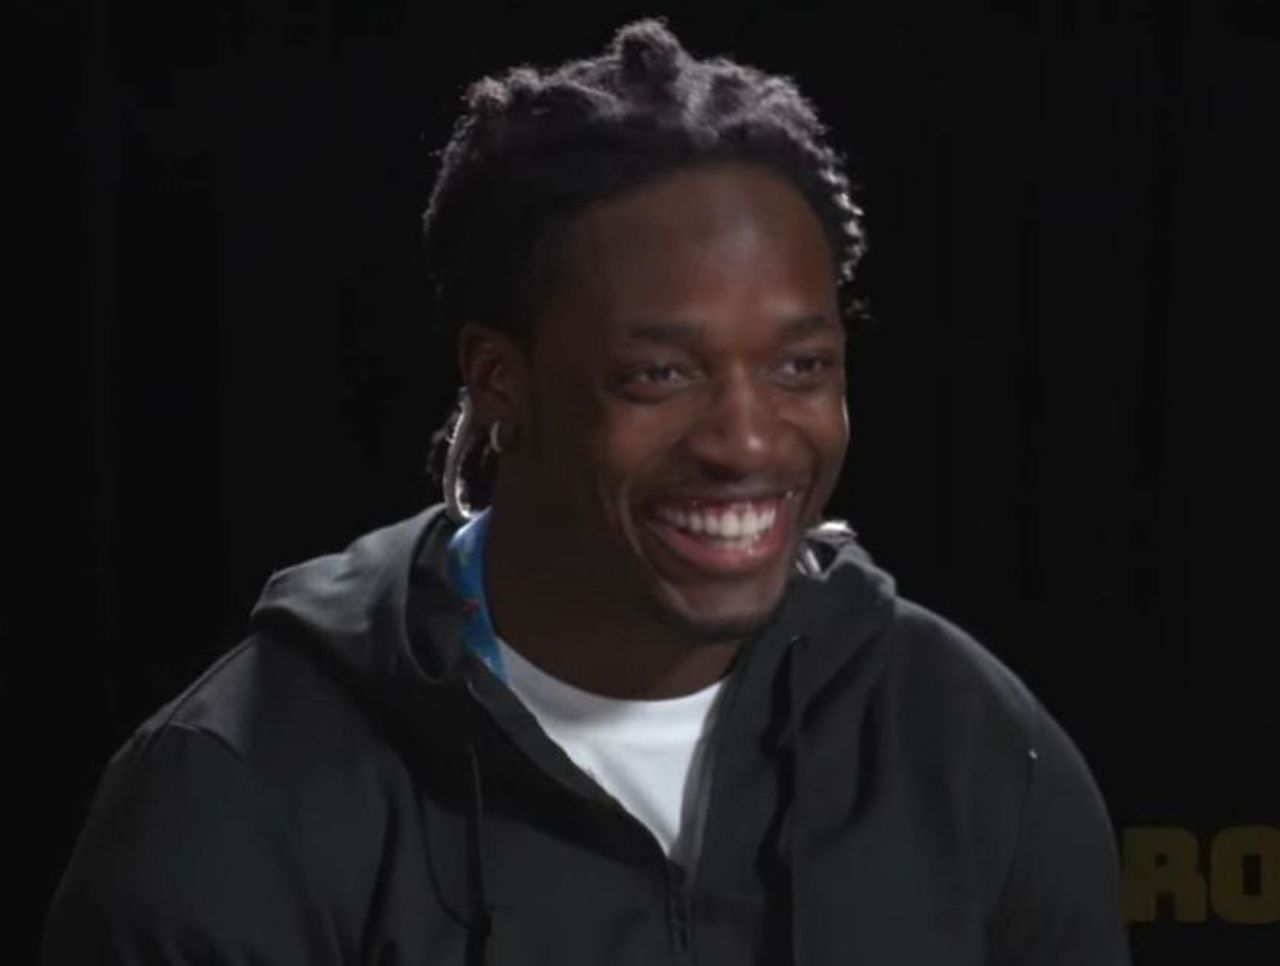 Cropped melvin gordon laughing